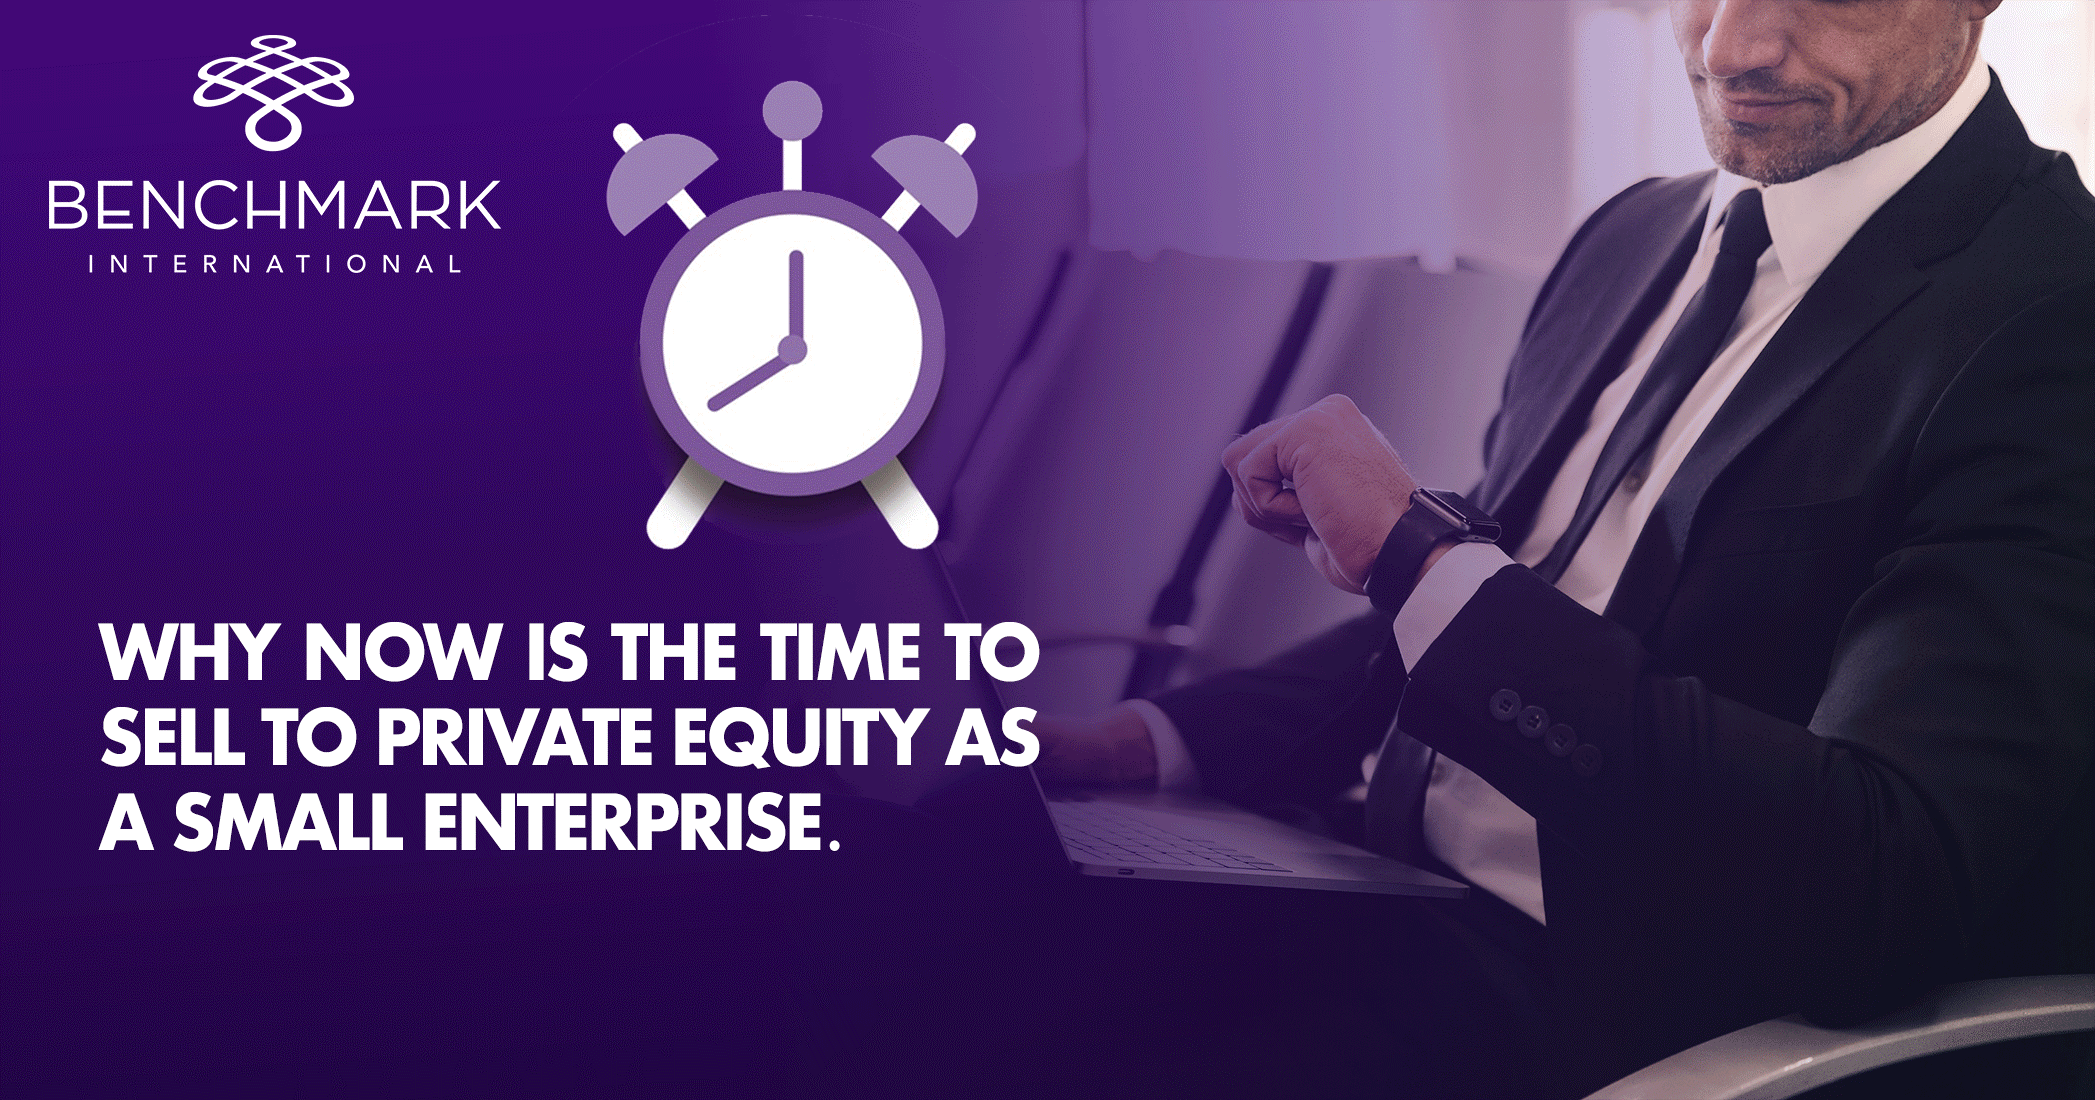 Why Now is the Time to Sell to Private Equity as a Small Enterprise